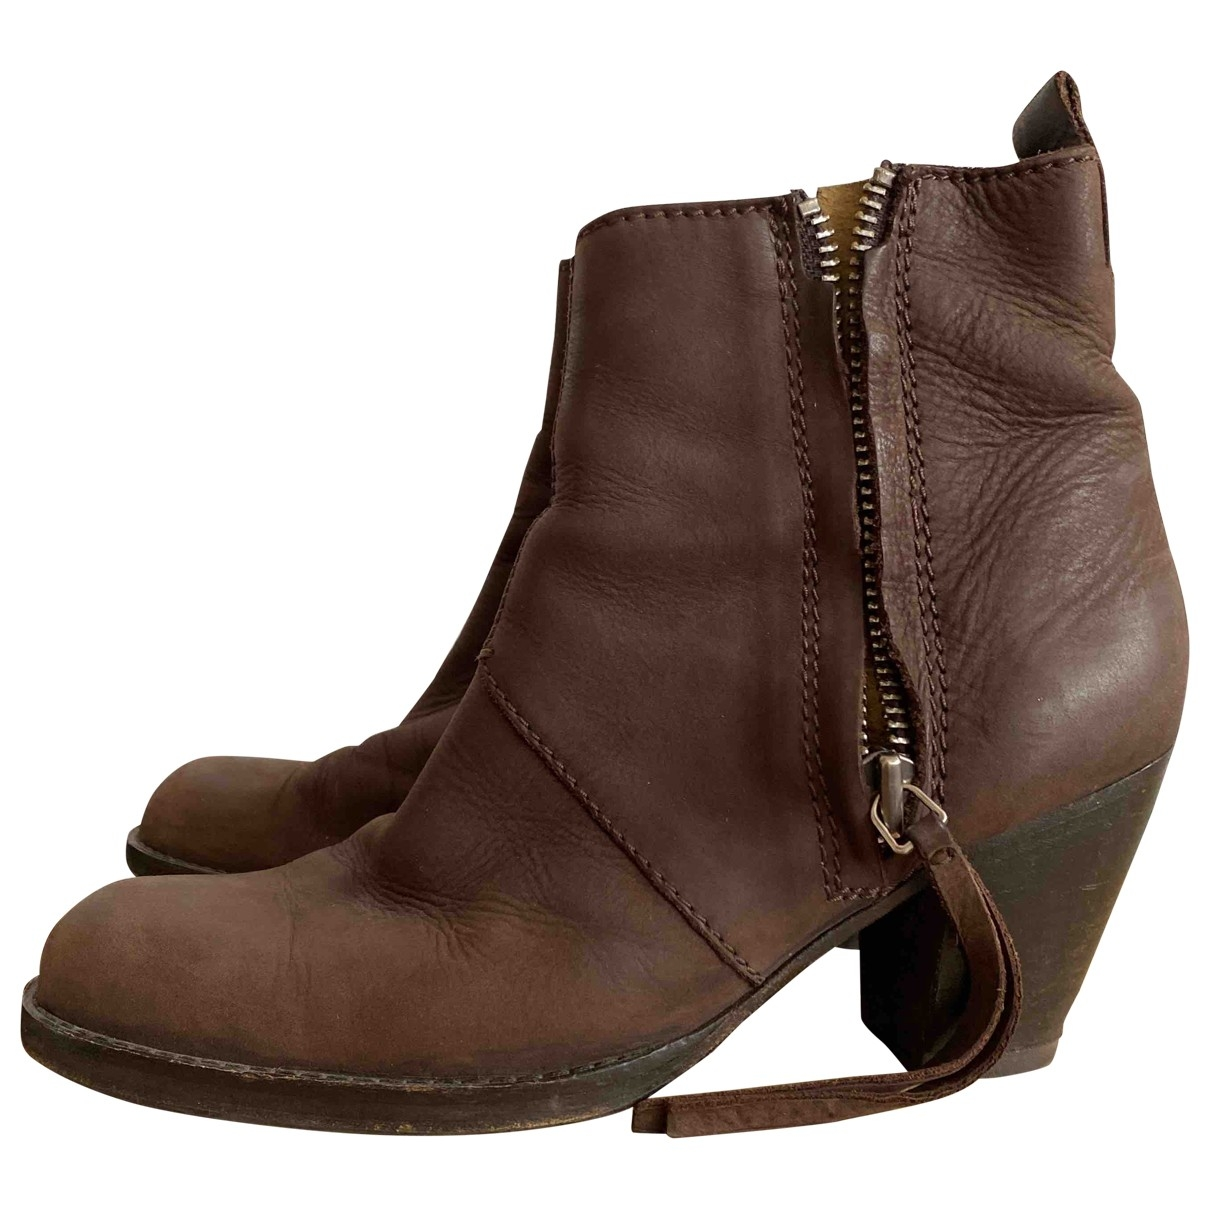 Acne Studios Pistol Brown Leather Ankle boots for Women 39 EU